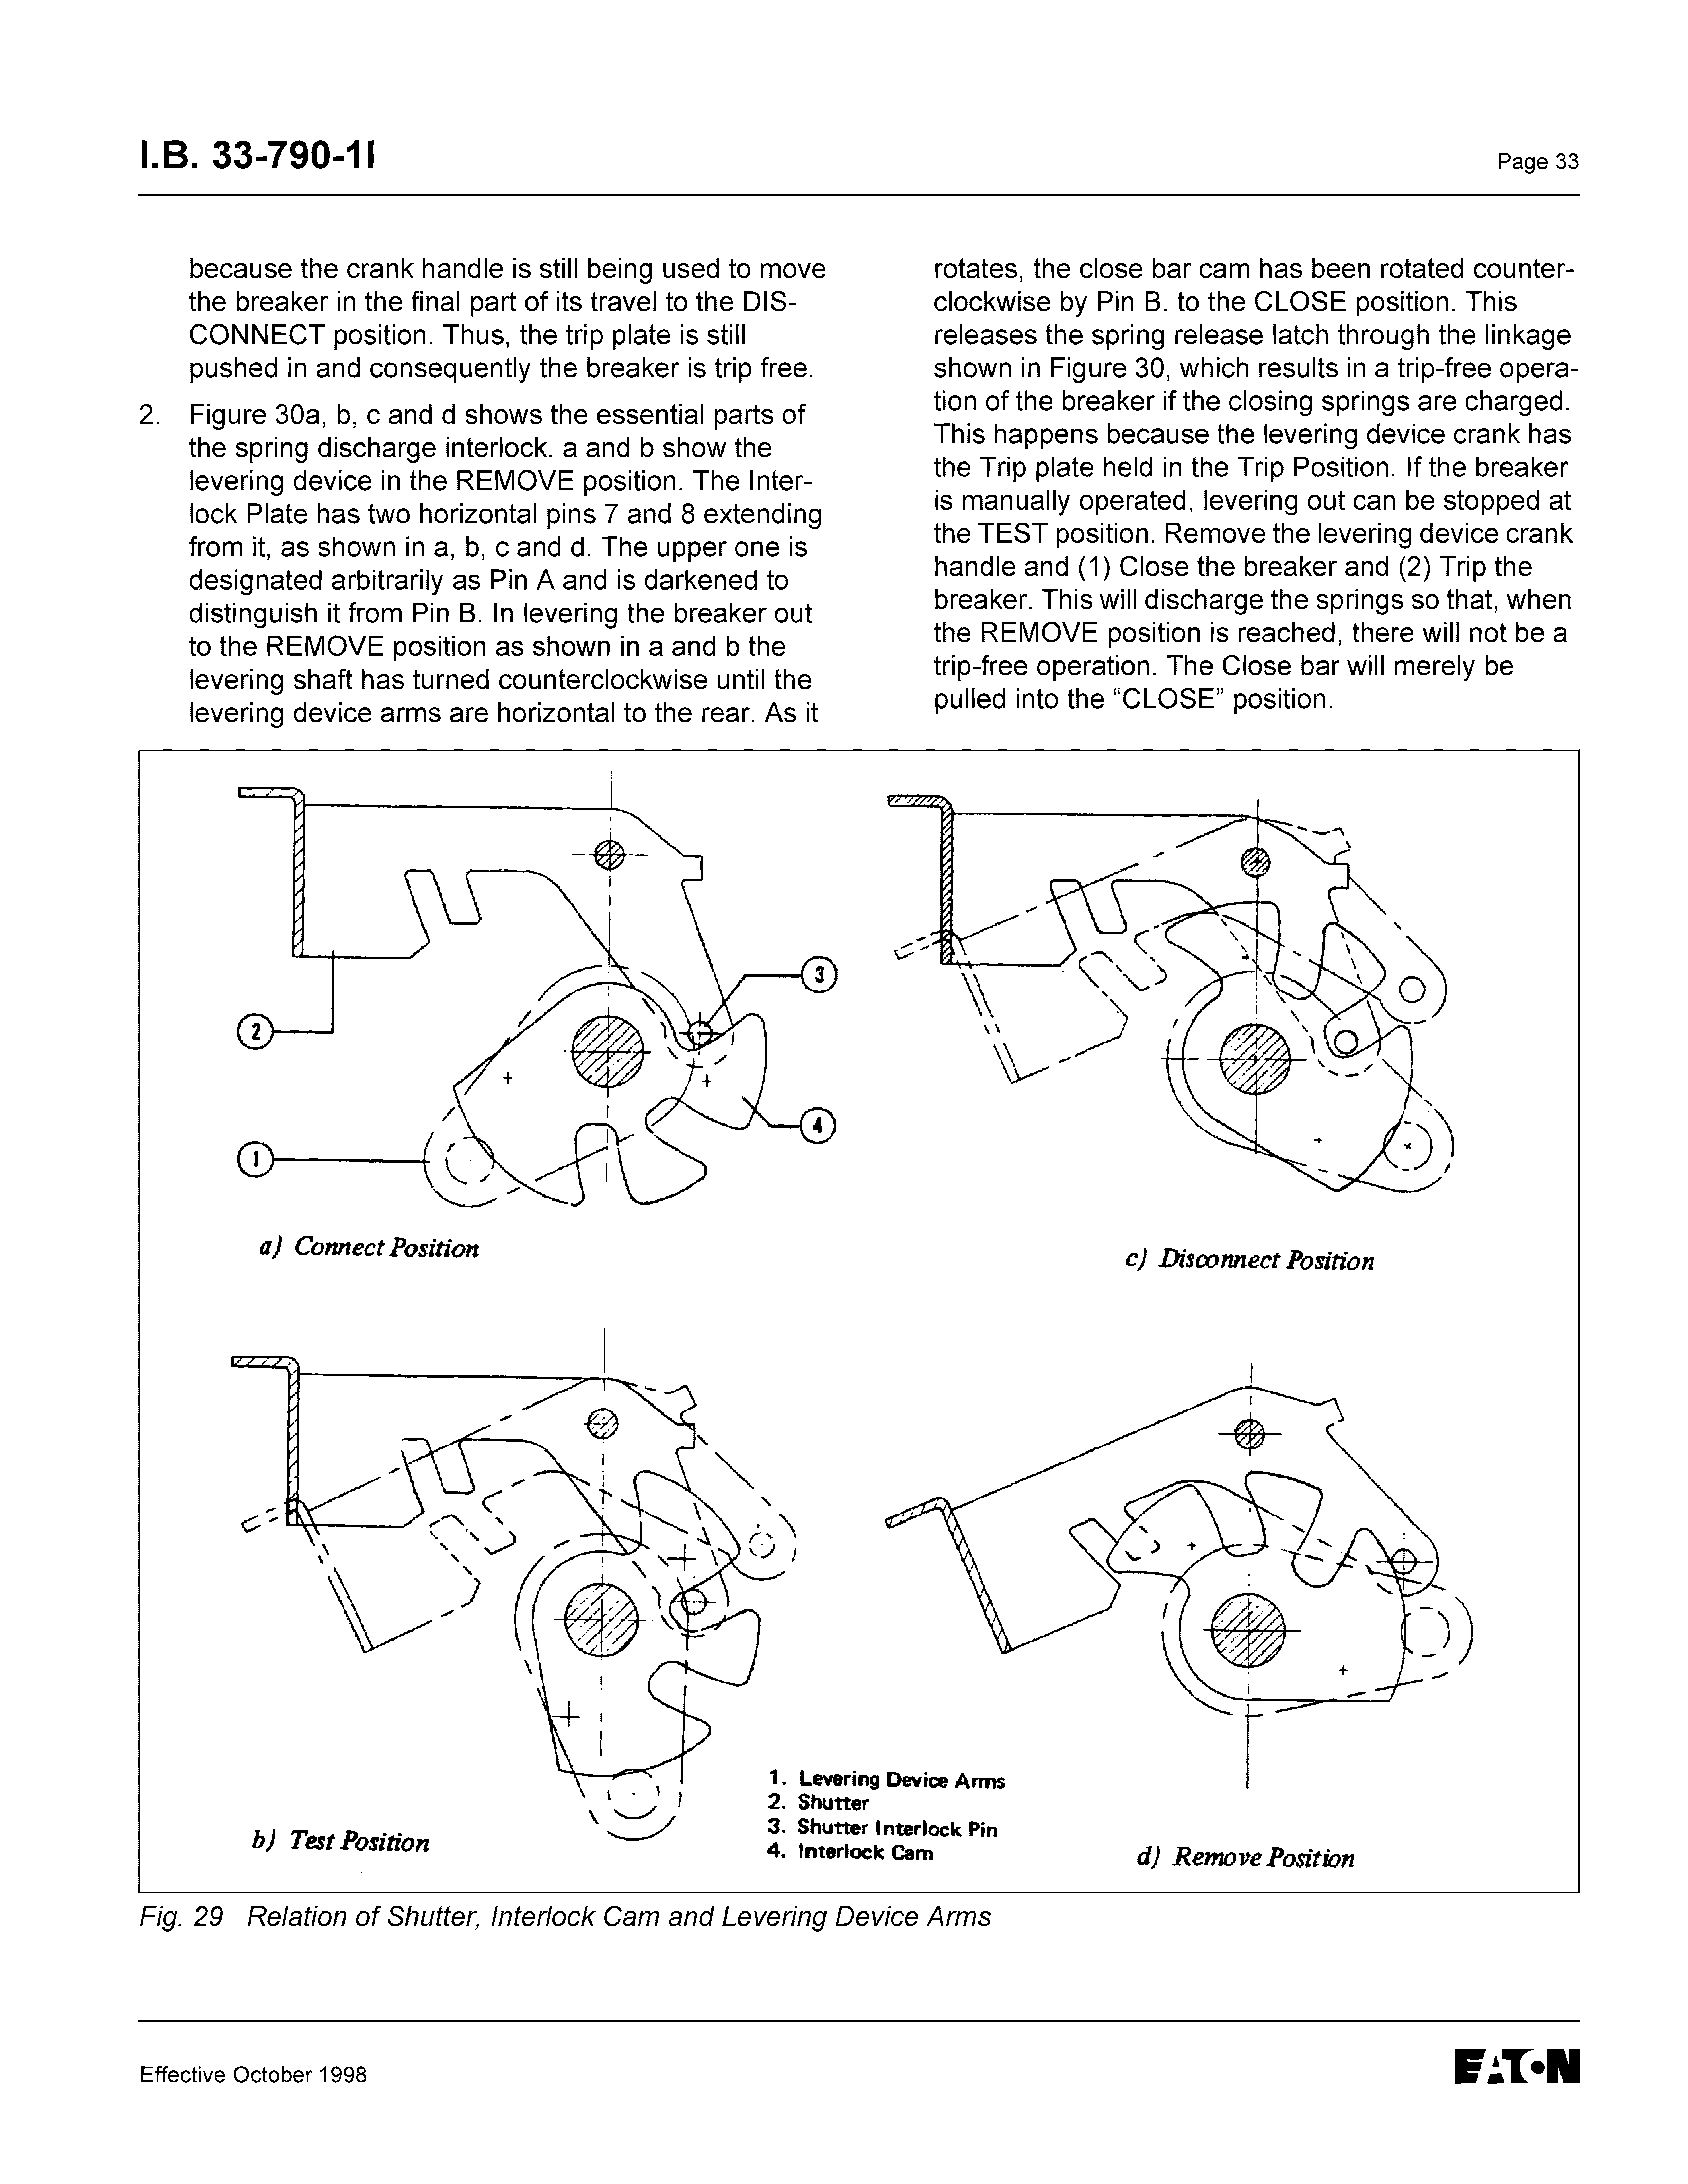 instructions for low voltage power circuit breakers types ds and dsl Automotive 12V Circuit Breaker 1 8 33 790 11 page 33 because the crank handle is still being